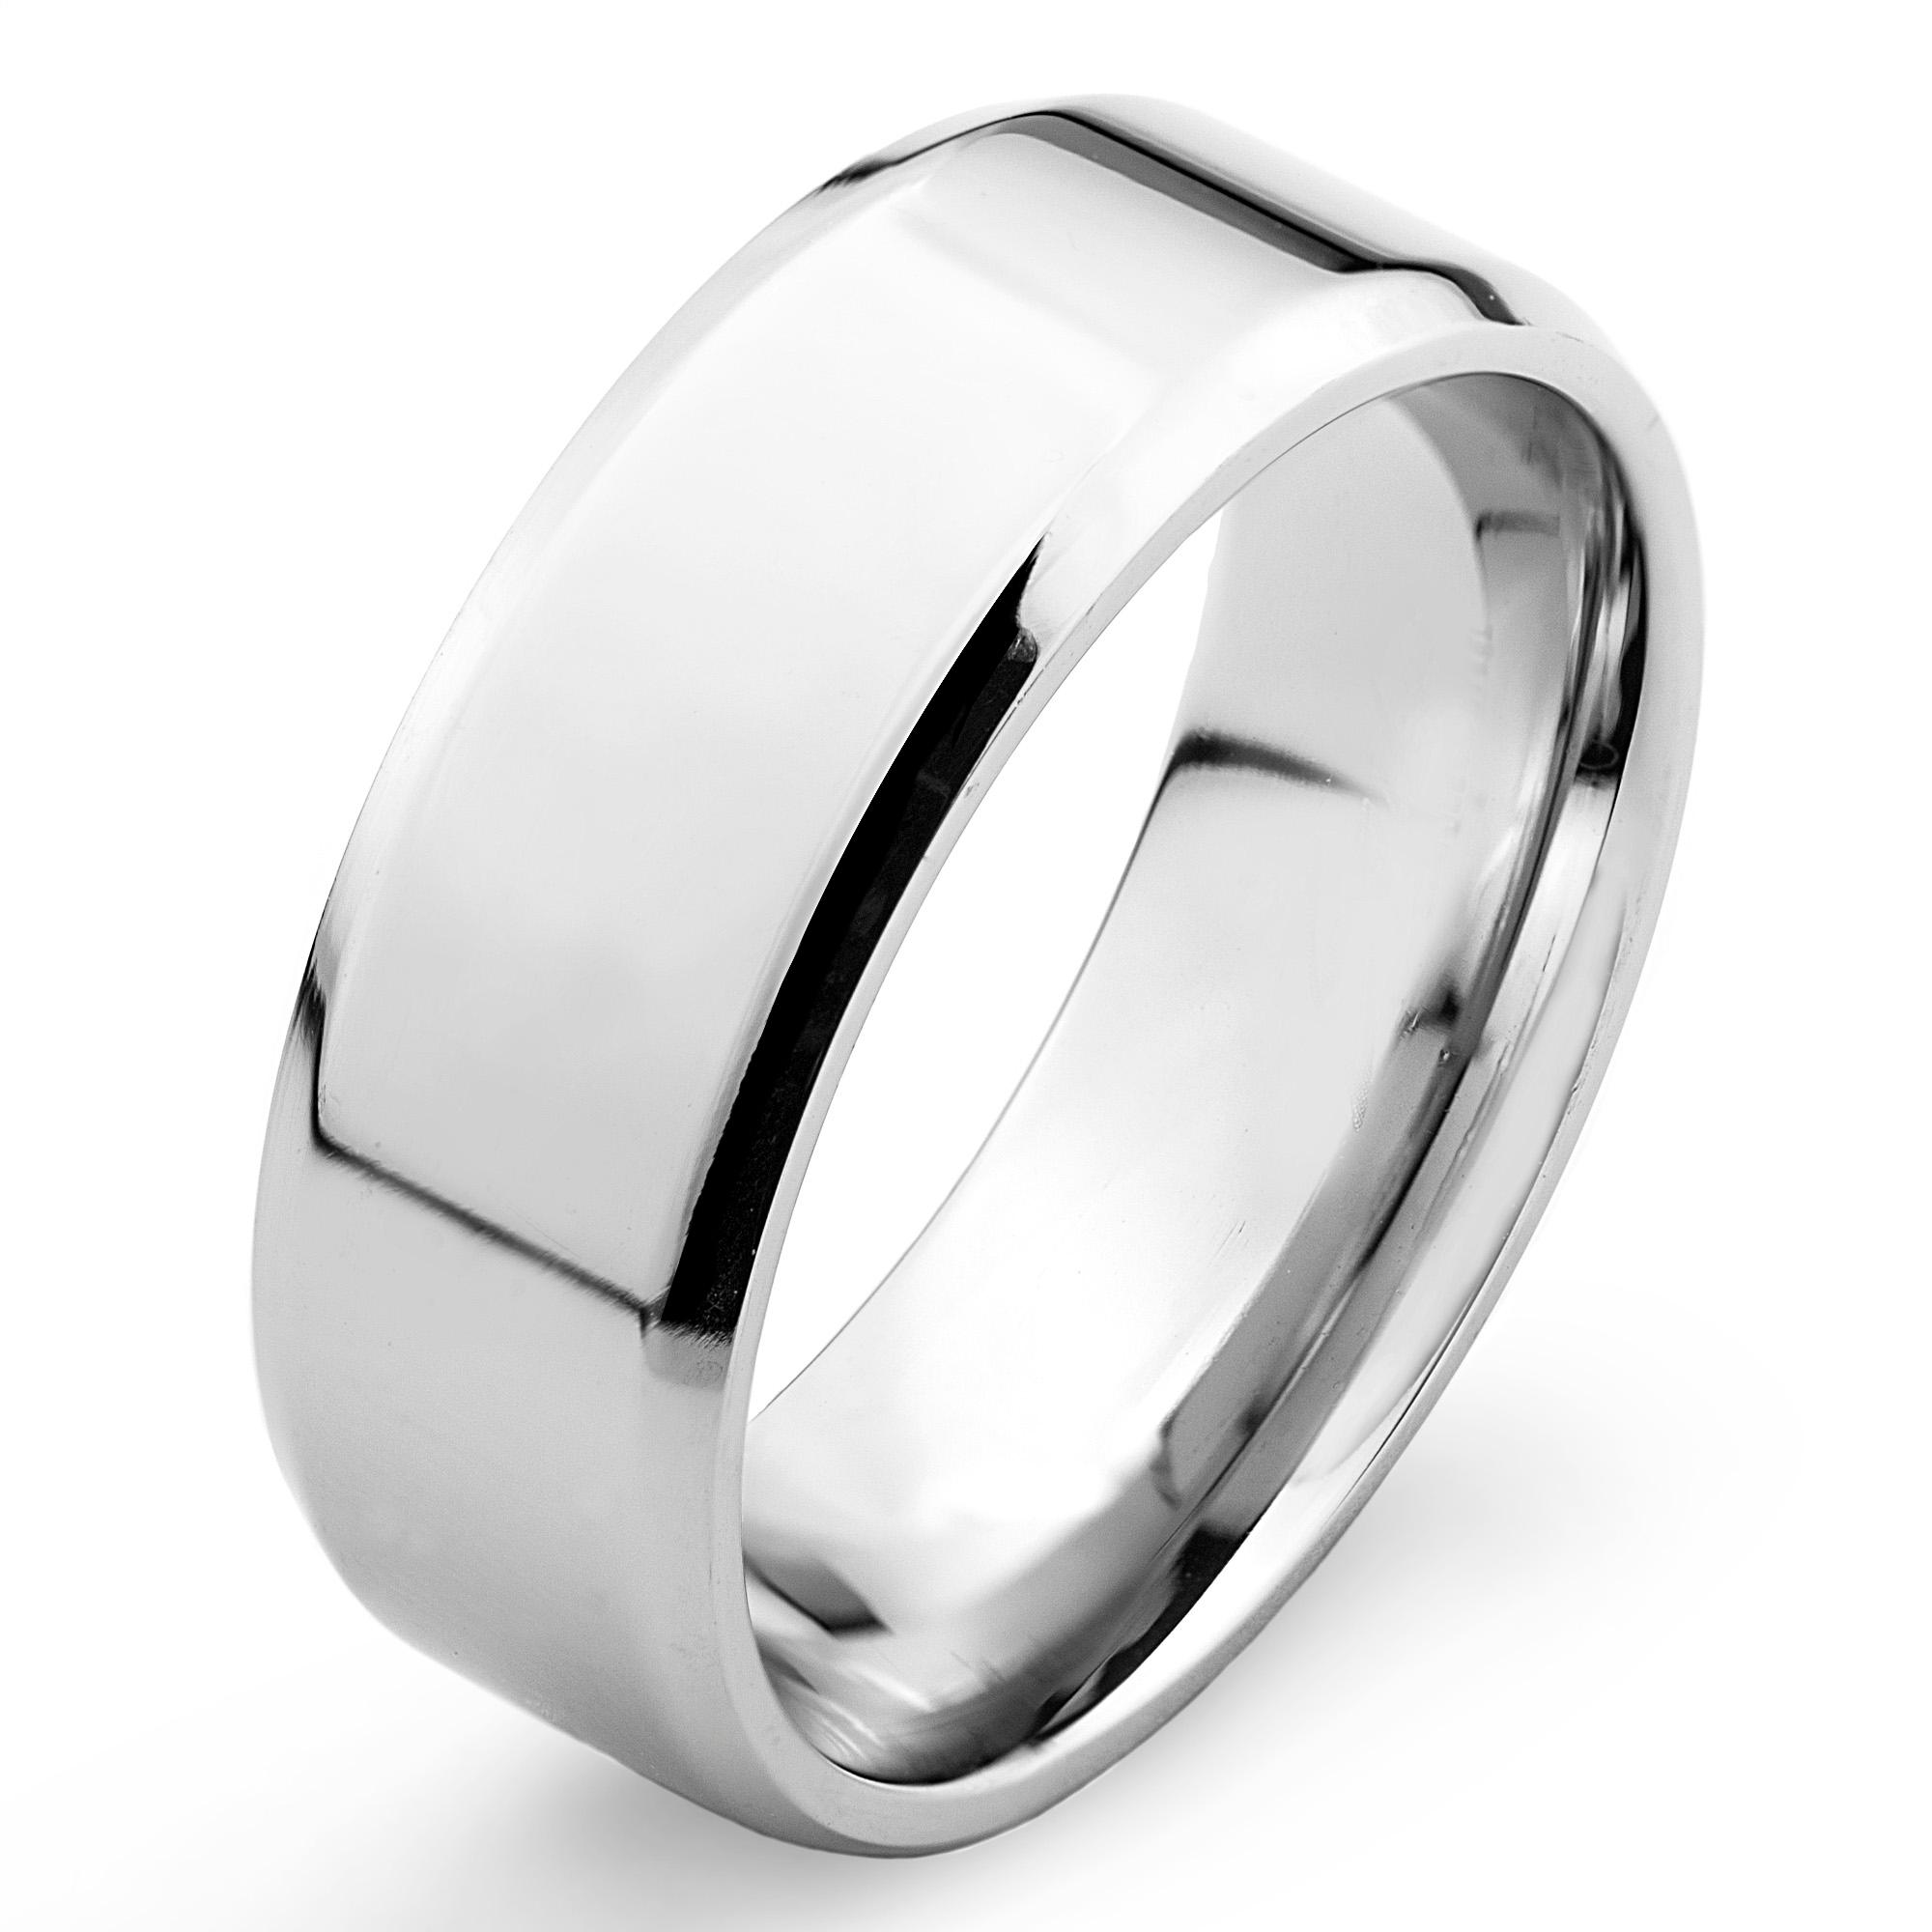 316L Stainless Steel Mirror Polished Flat Band with Beveled Edge Ring - Thumbnail 0